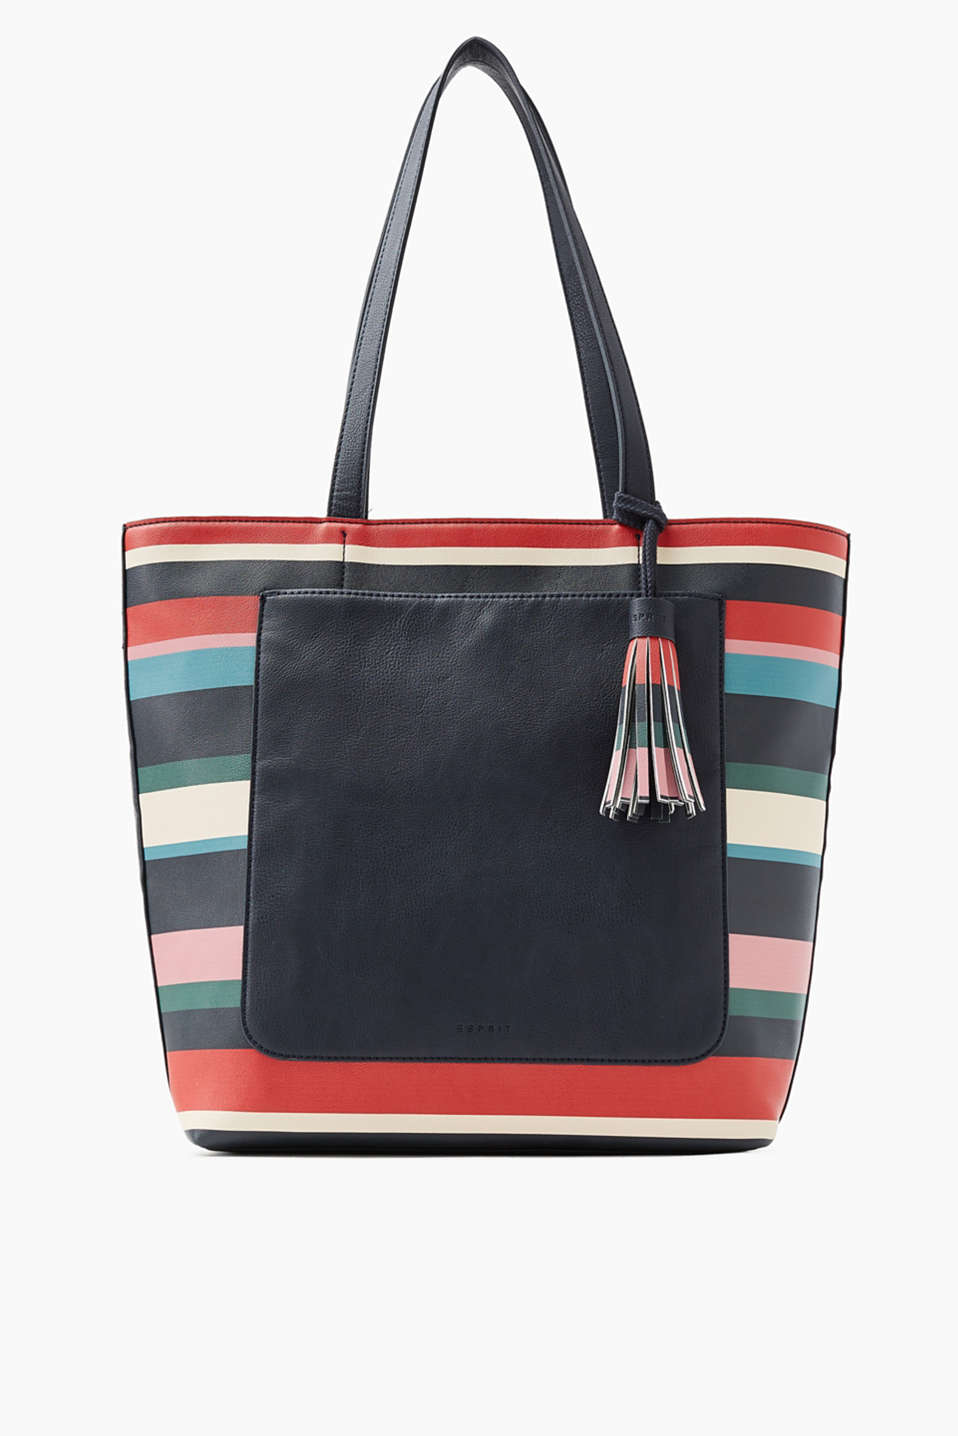 In smooth faux leather: shopper with a decorative tassel and slit compartment